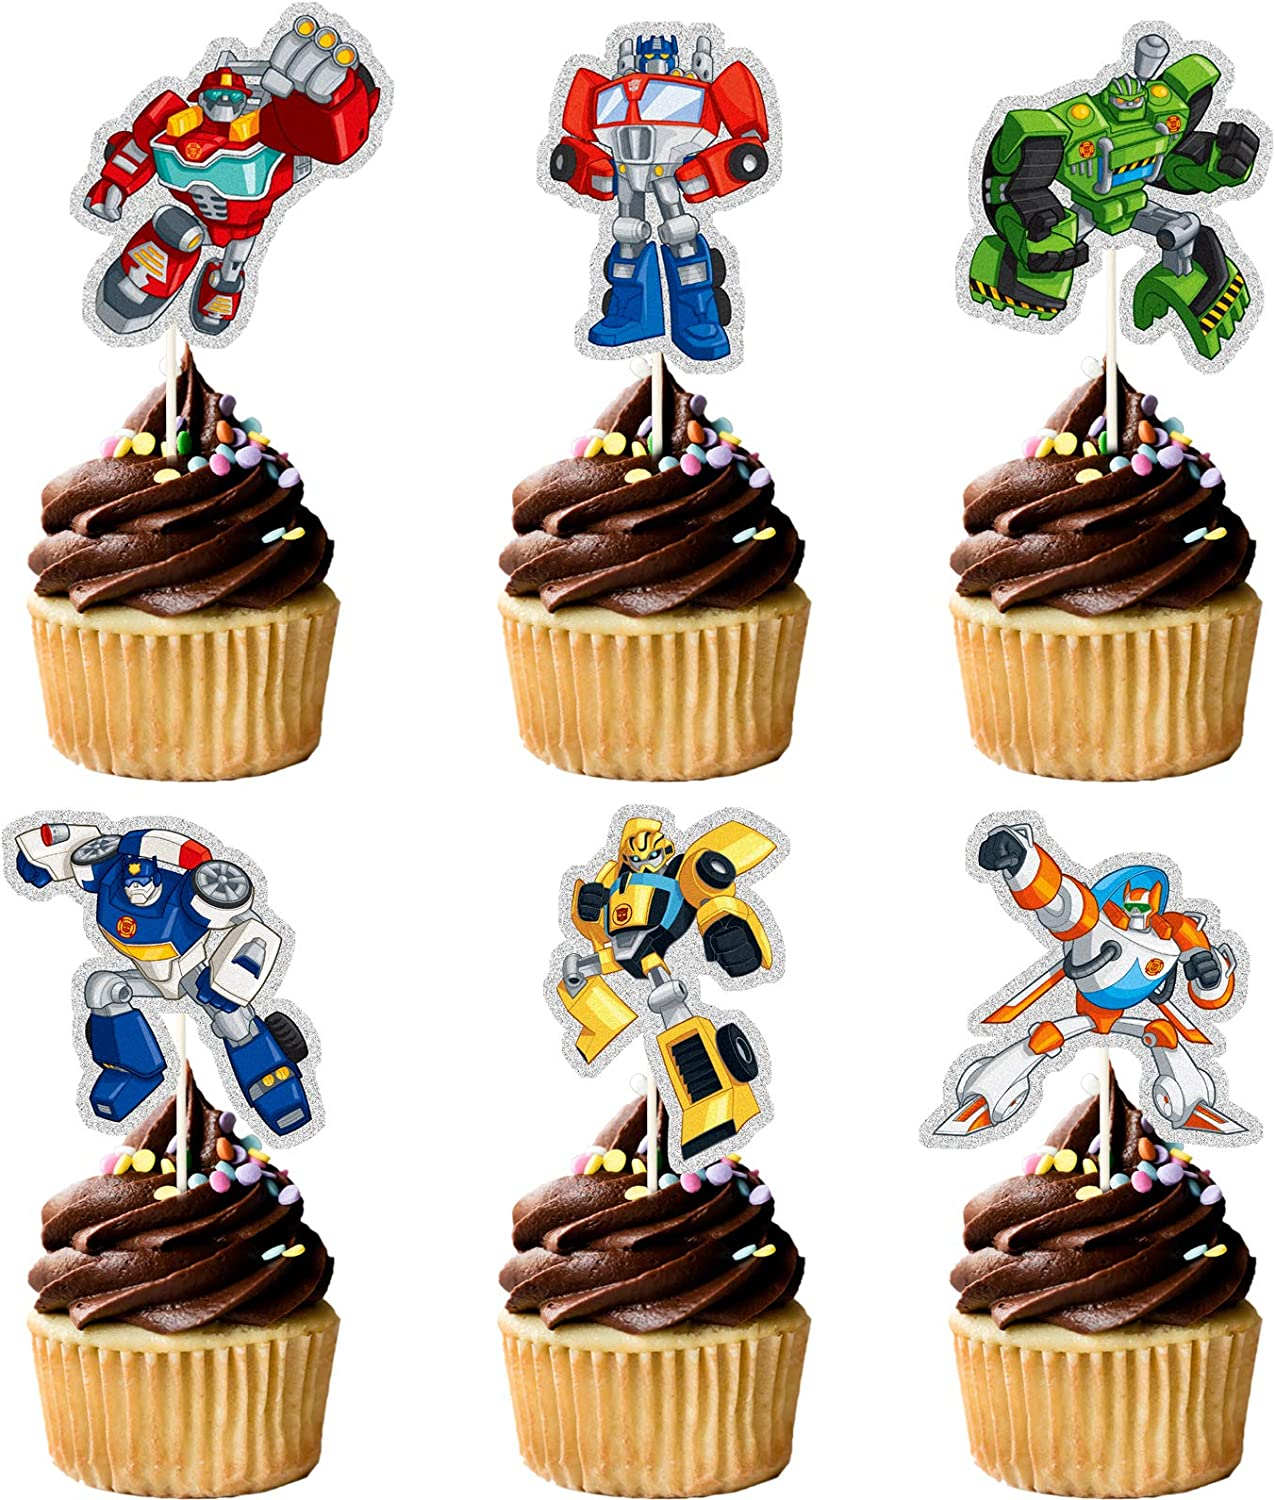 Glitter Transformers Cupcake Topper, Transformers Theme Birthday Party Suppliers, Transformers Cupcake Decoration, Kids Boys Robot Party Favor